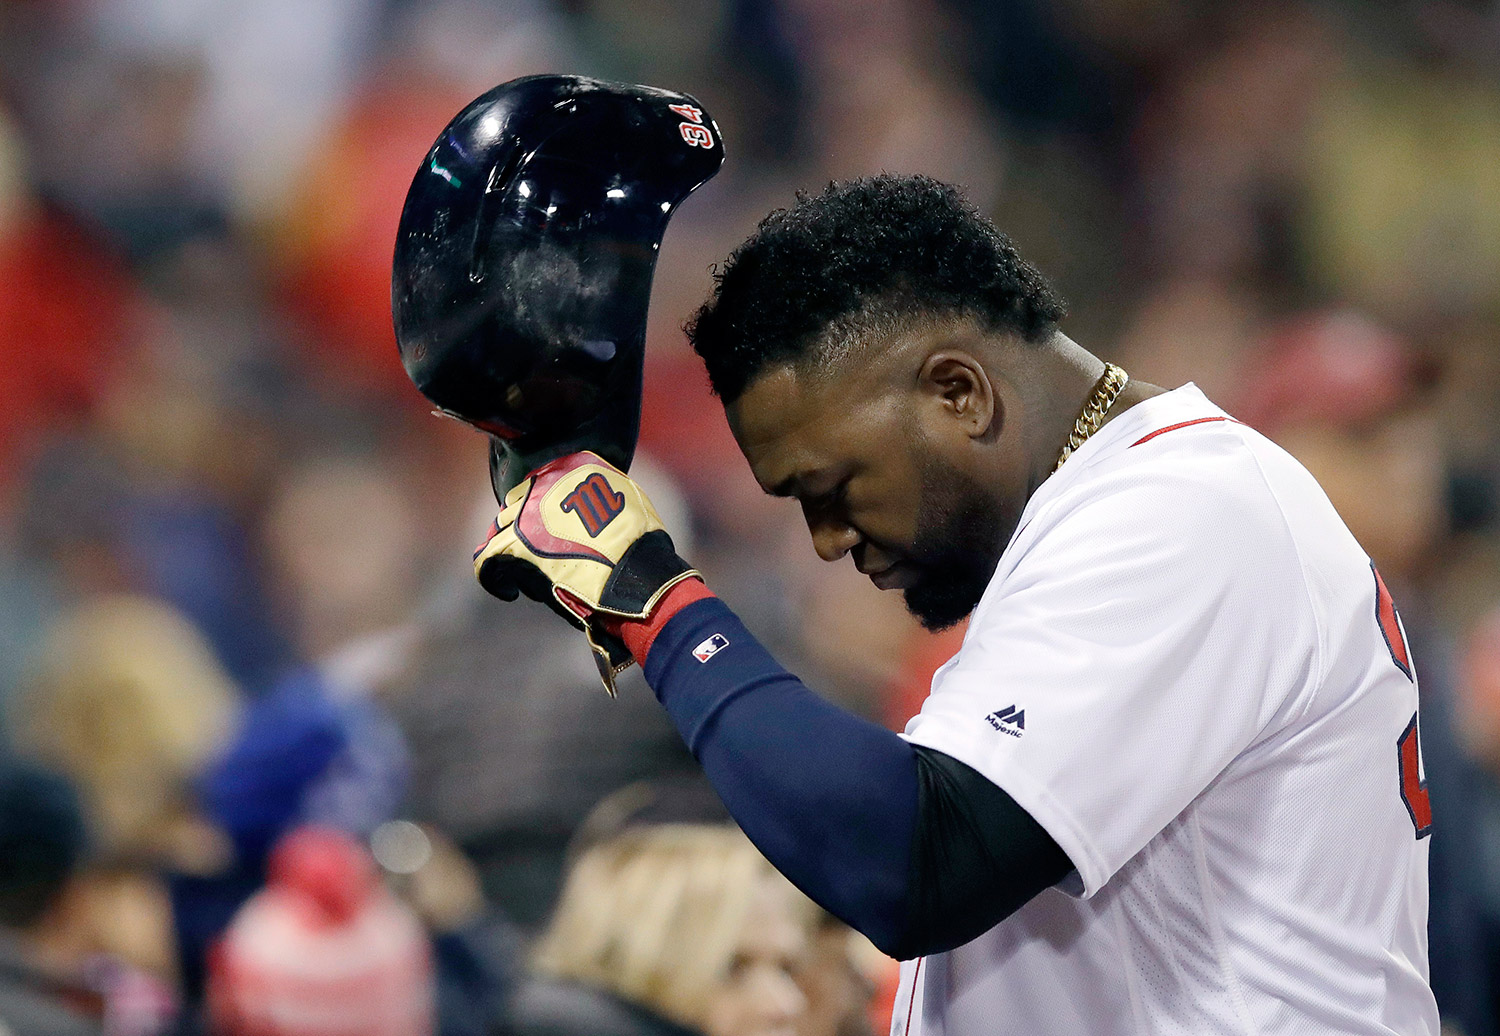 Major league notebook: Red Sox to retire David Ortiz's No. 34